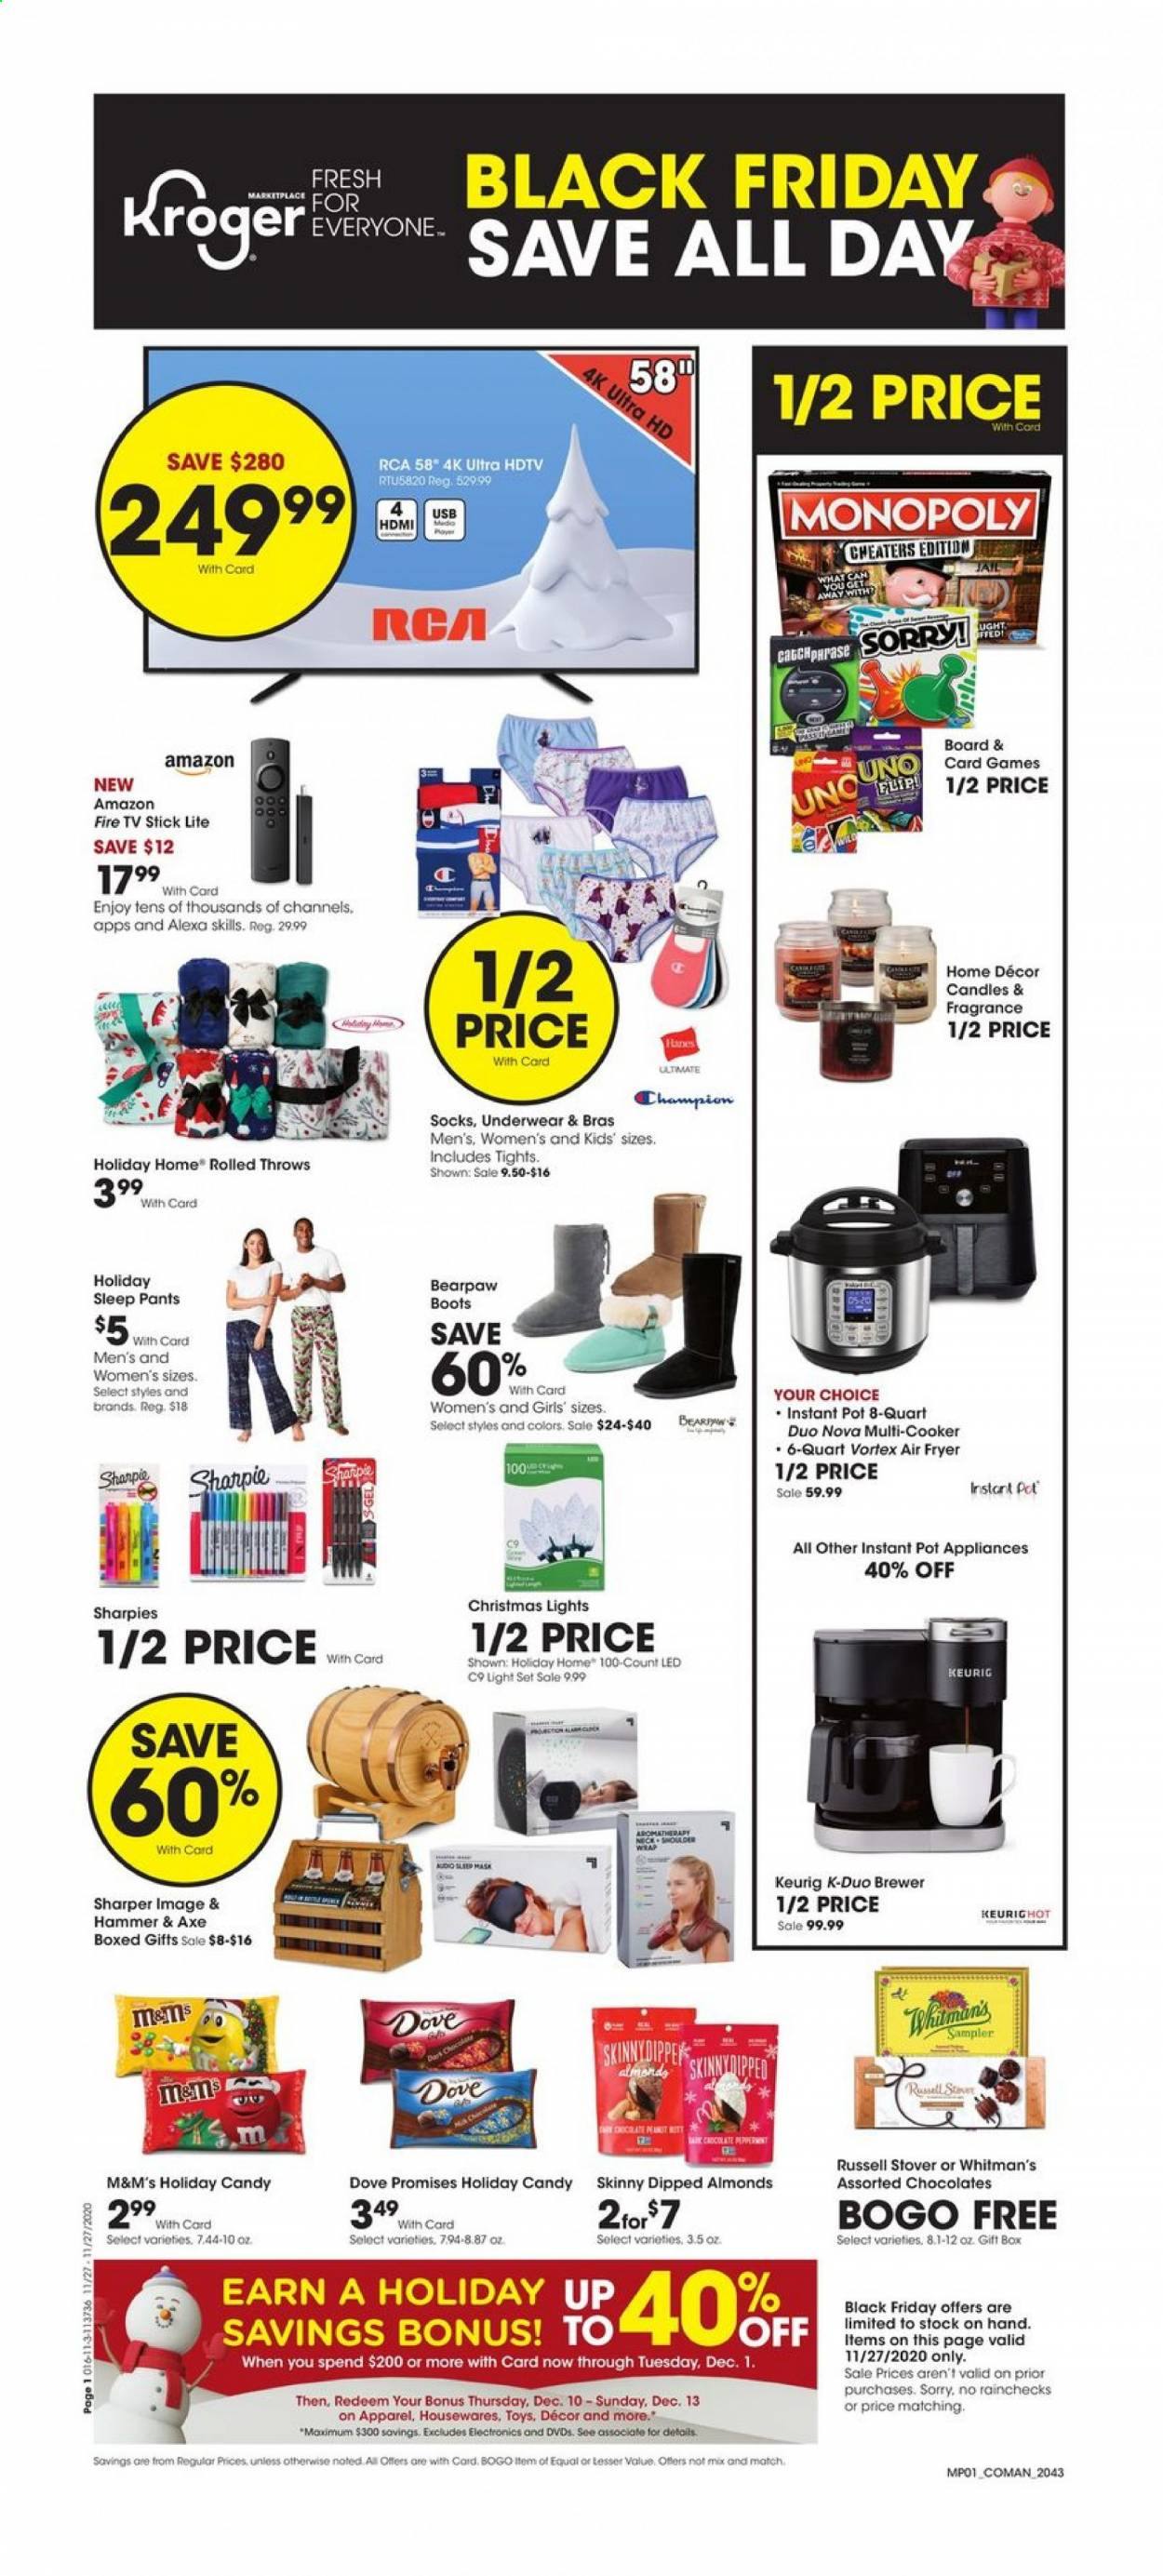 Kroger Flyer - 11.27.2020 - 11.27.2020 - Sales products - brewer, Amazon Fire, light set, wrap, candy, M&M's, almonds, Dove, fragrance, pot, gift box, candle, rca, UHD TV, ultra hd, HDTV, TV, fryer, air fryer, Instant Pot, mask, monopoly, toys, Axe, hammer, VORTEX. Page 1.